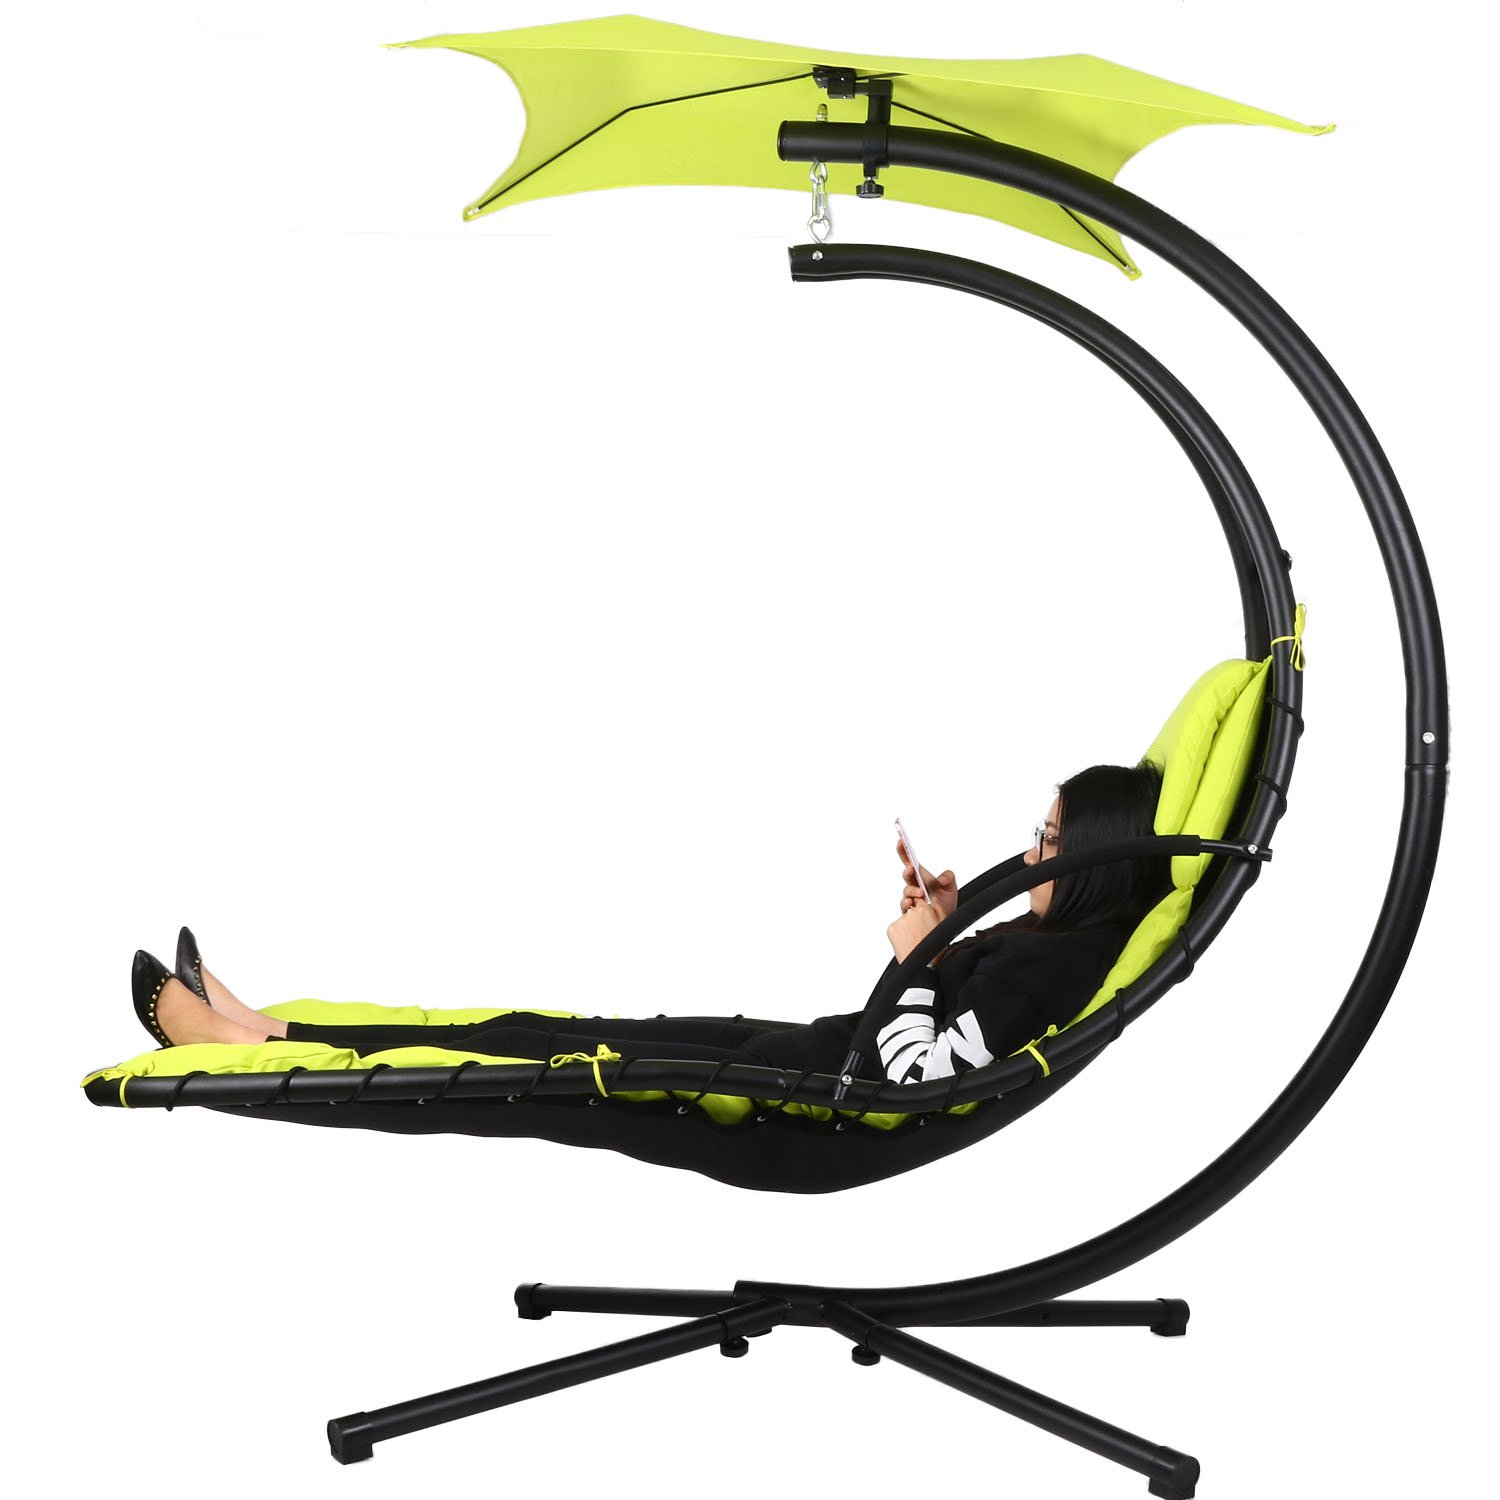 Amazon Ancheer 350lbs Max Weight Capacity Hanging Chaise